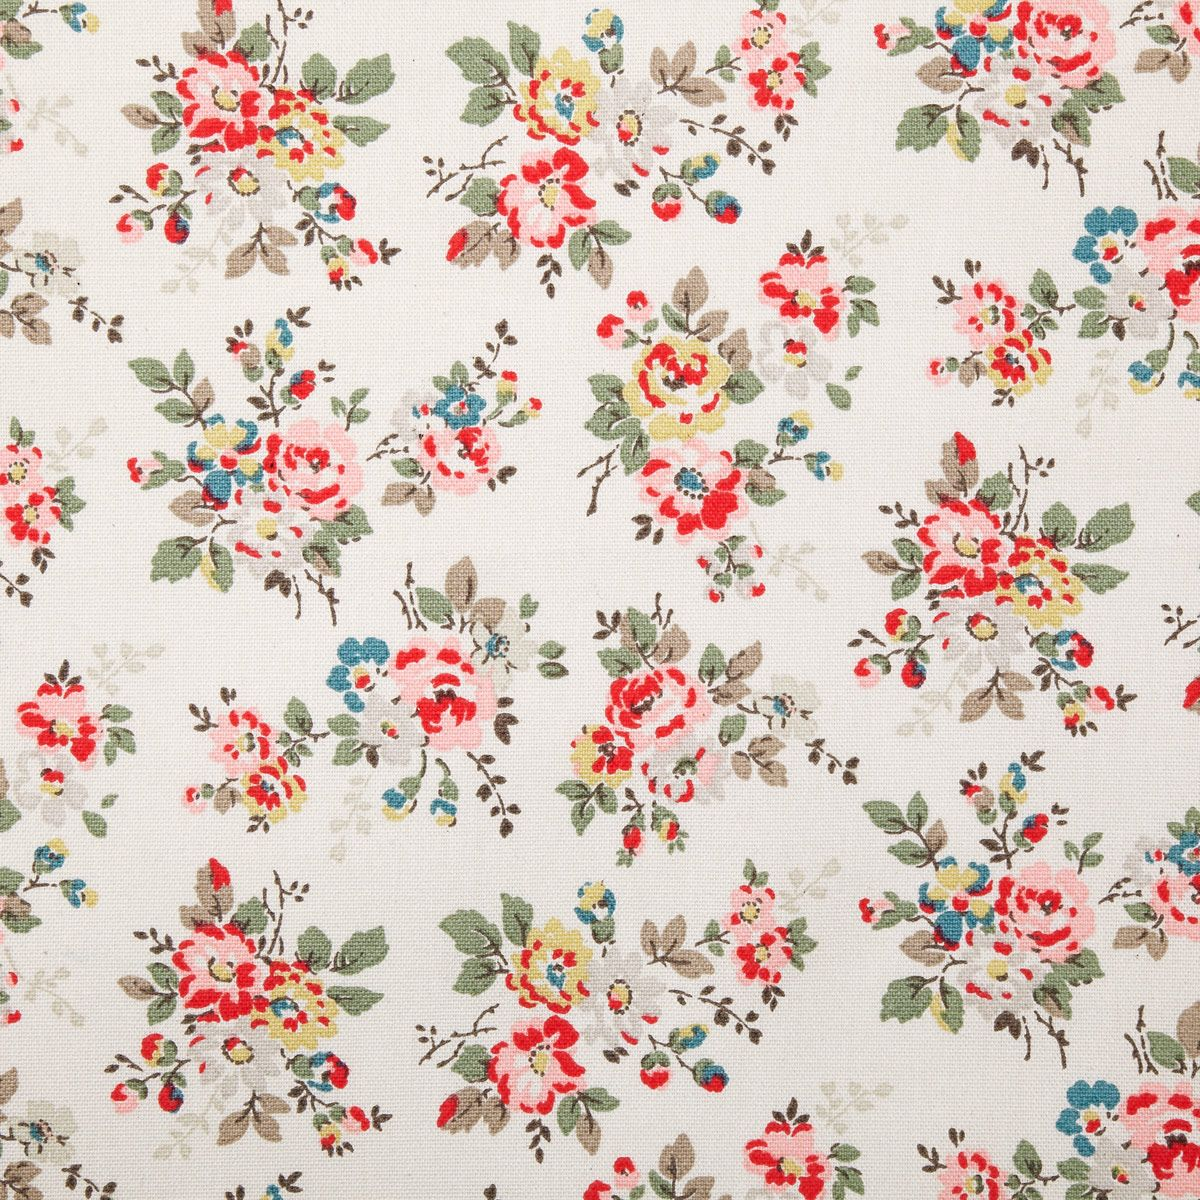 Cotton Fabric Kingswood Rose Cotton Duck Cath Kidston Pattern